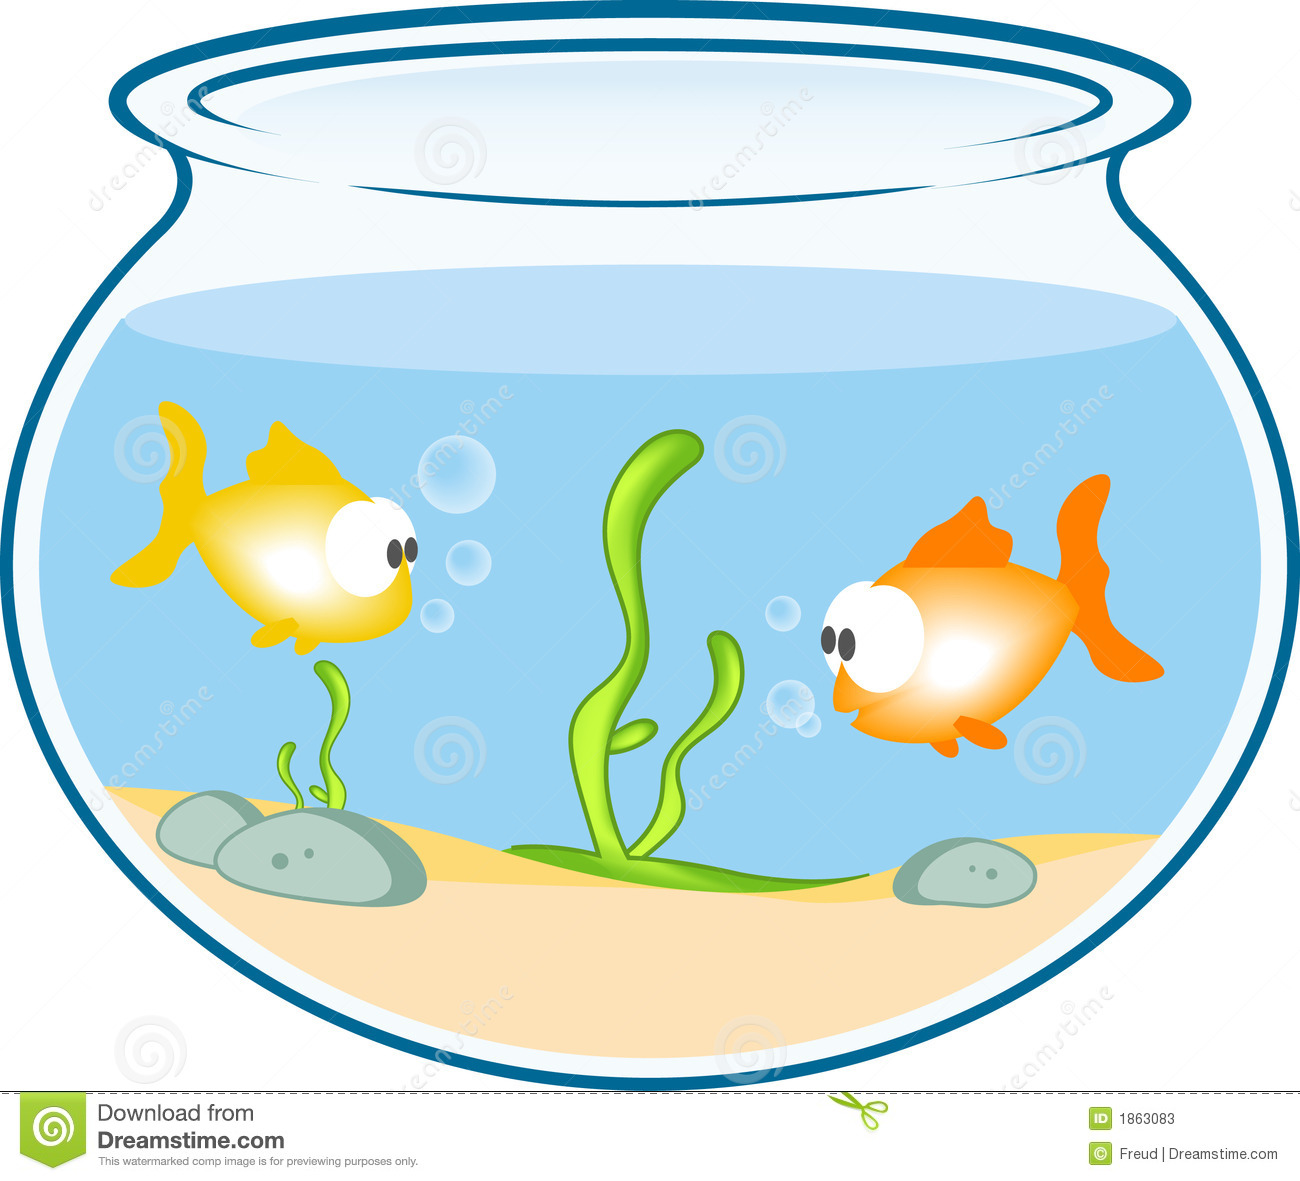 how to draw a goldfish in a bowl